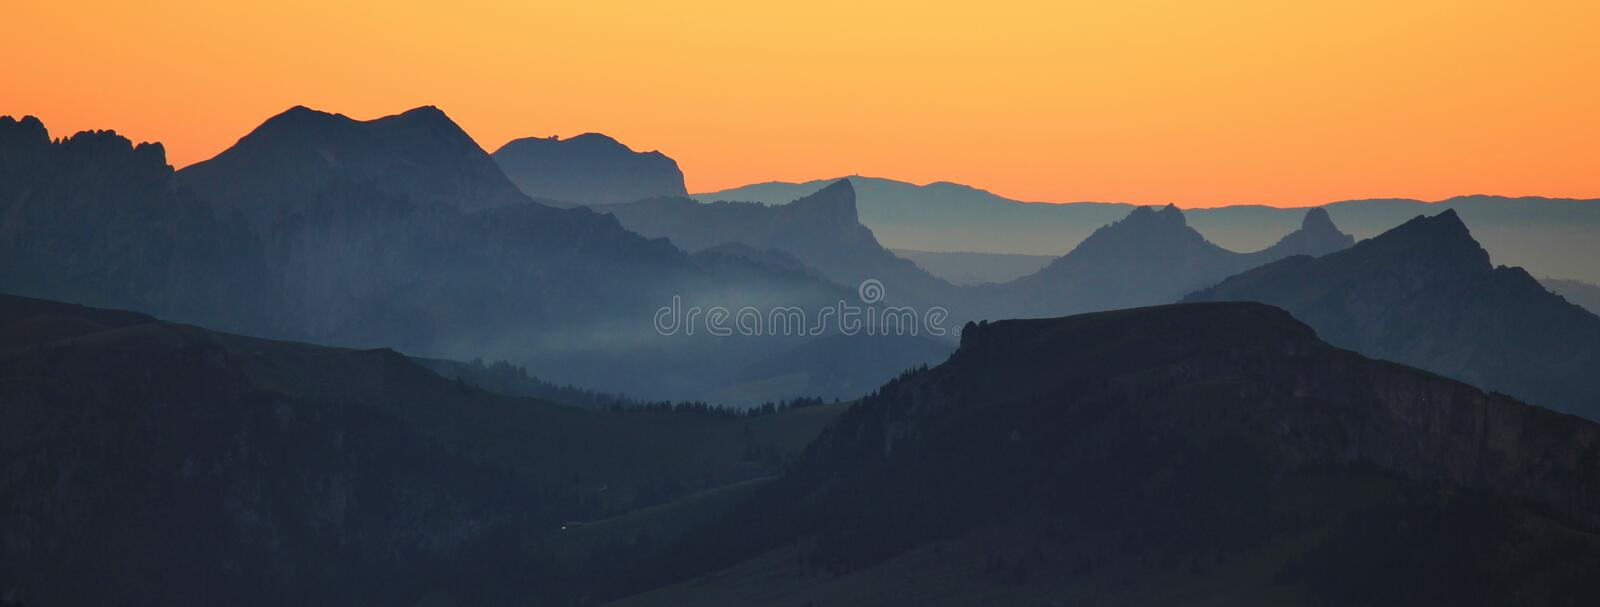 Mountain ranges seen from Mount Niesen. Mountain ranges seen from Mount Niesen at sunset. Landscape in Switzerland stock photos